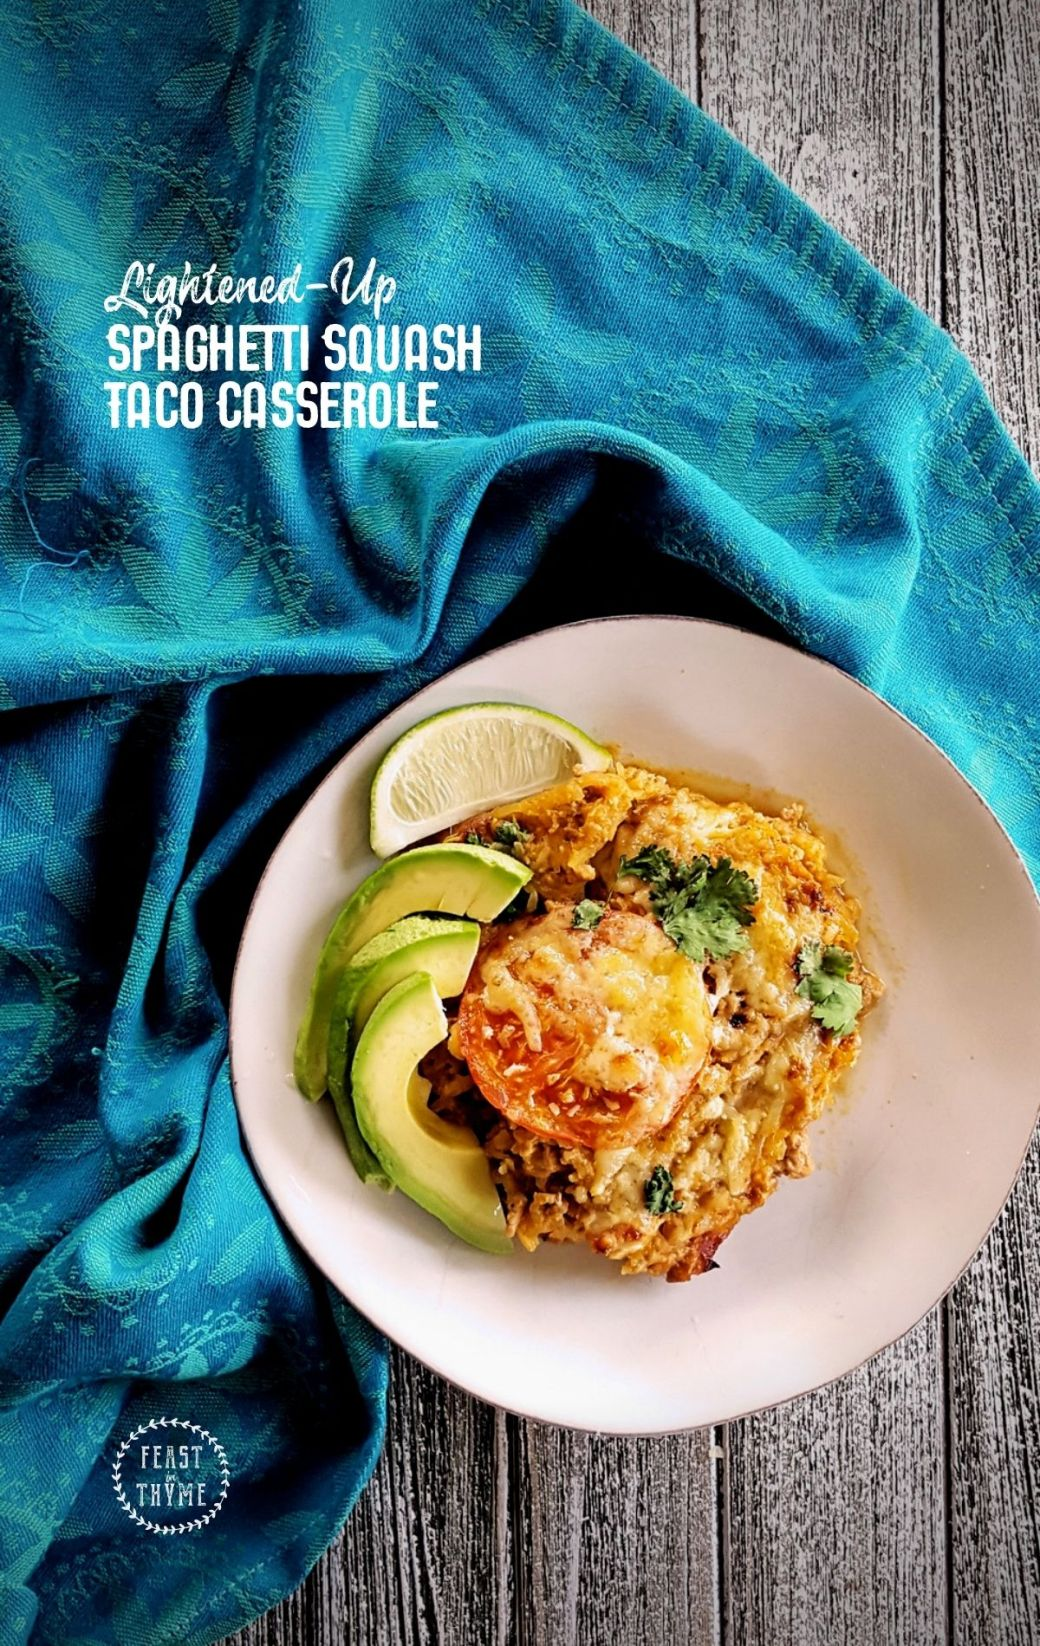 Cheesy Spaghetti Squash Taco Casserole, Lightened-Up